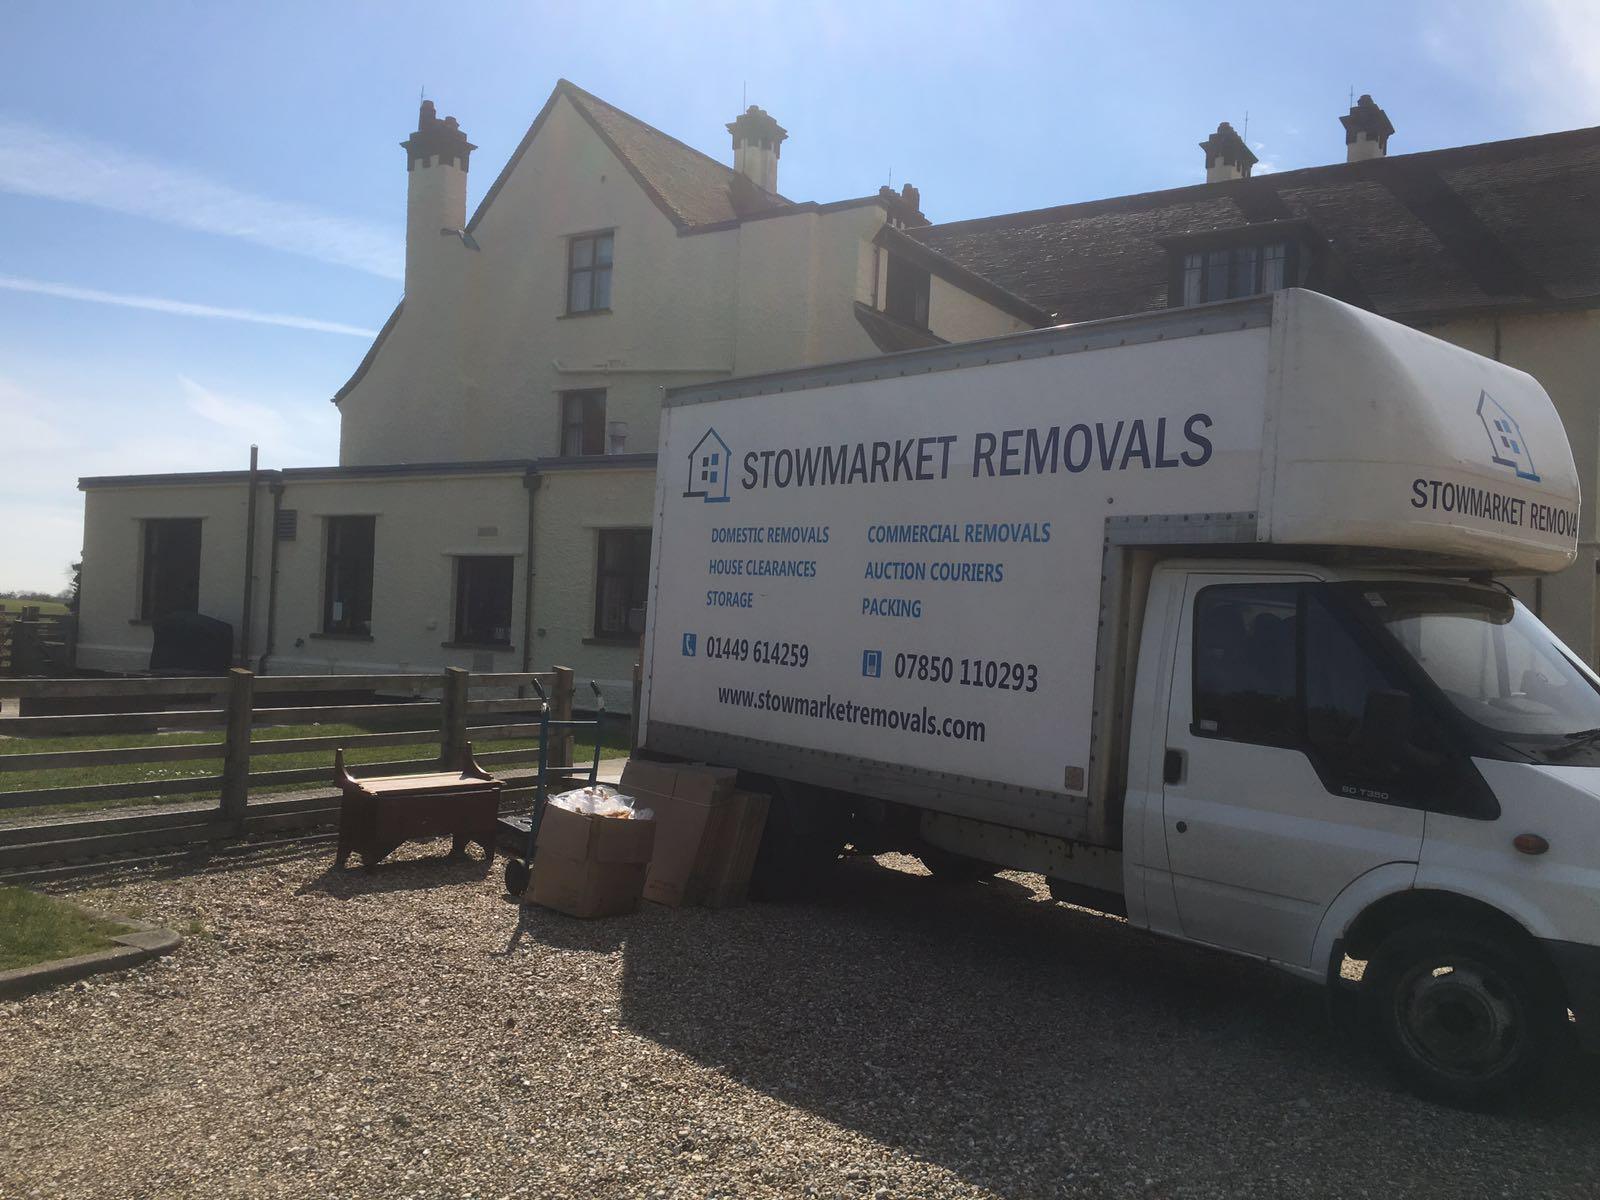 Removal for The National Trust